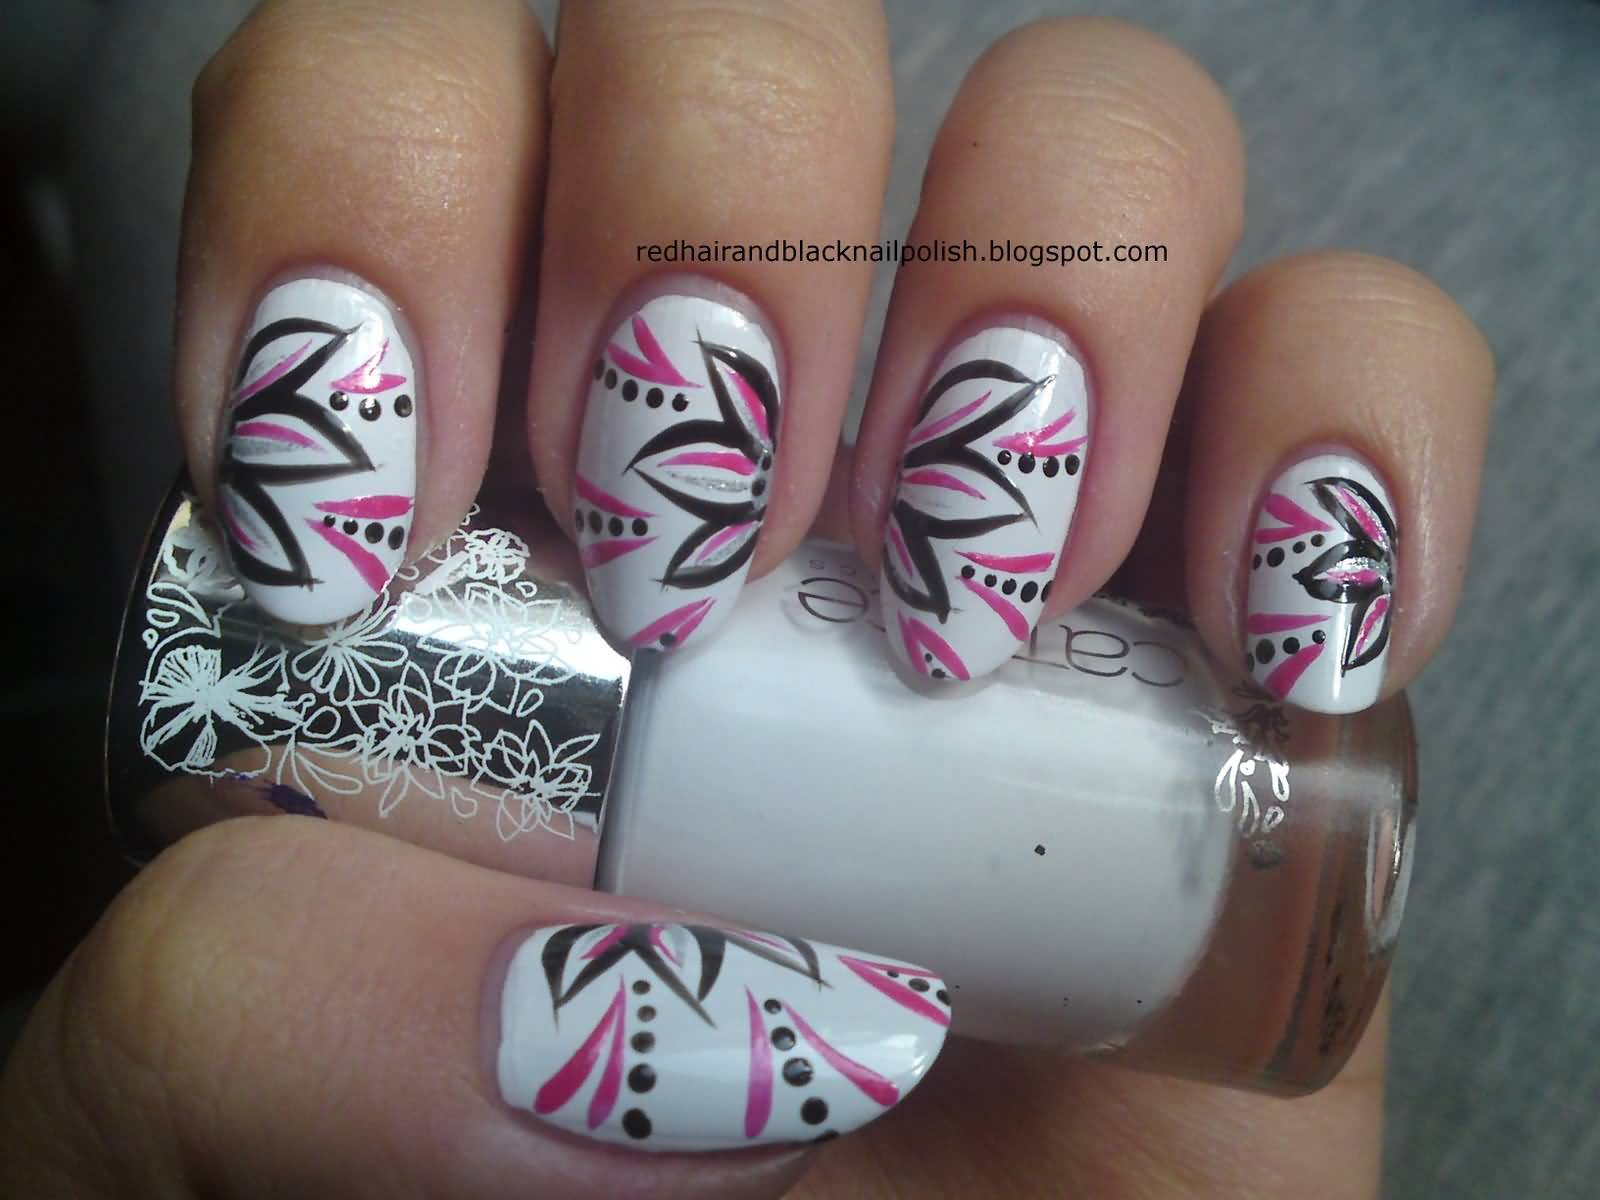 Nail art fort oglethorpe hours images nail art and nail design ideas nail art whitby hours gallery nail art and nail design ideas nail art fort oglethorpe hours prinsesfo Choice Image